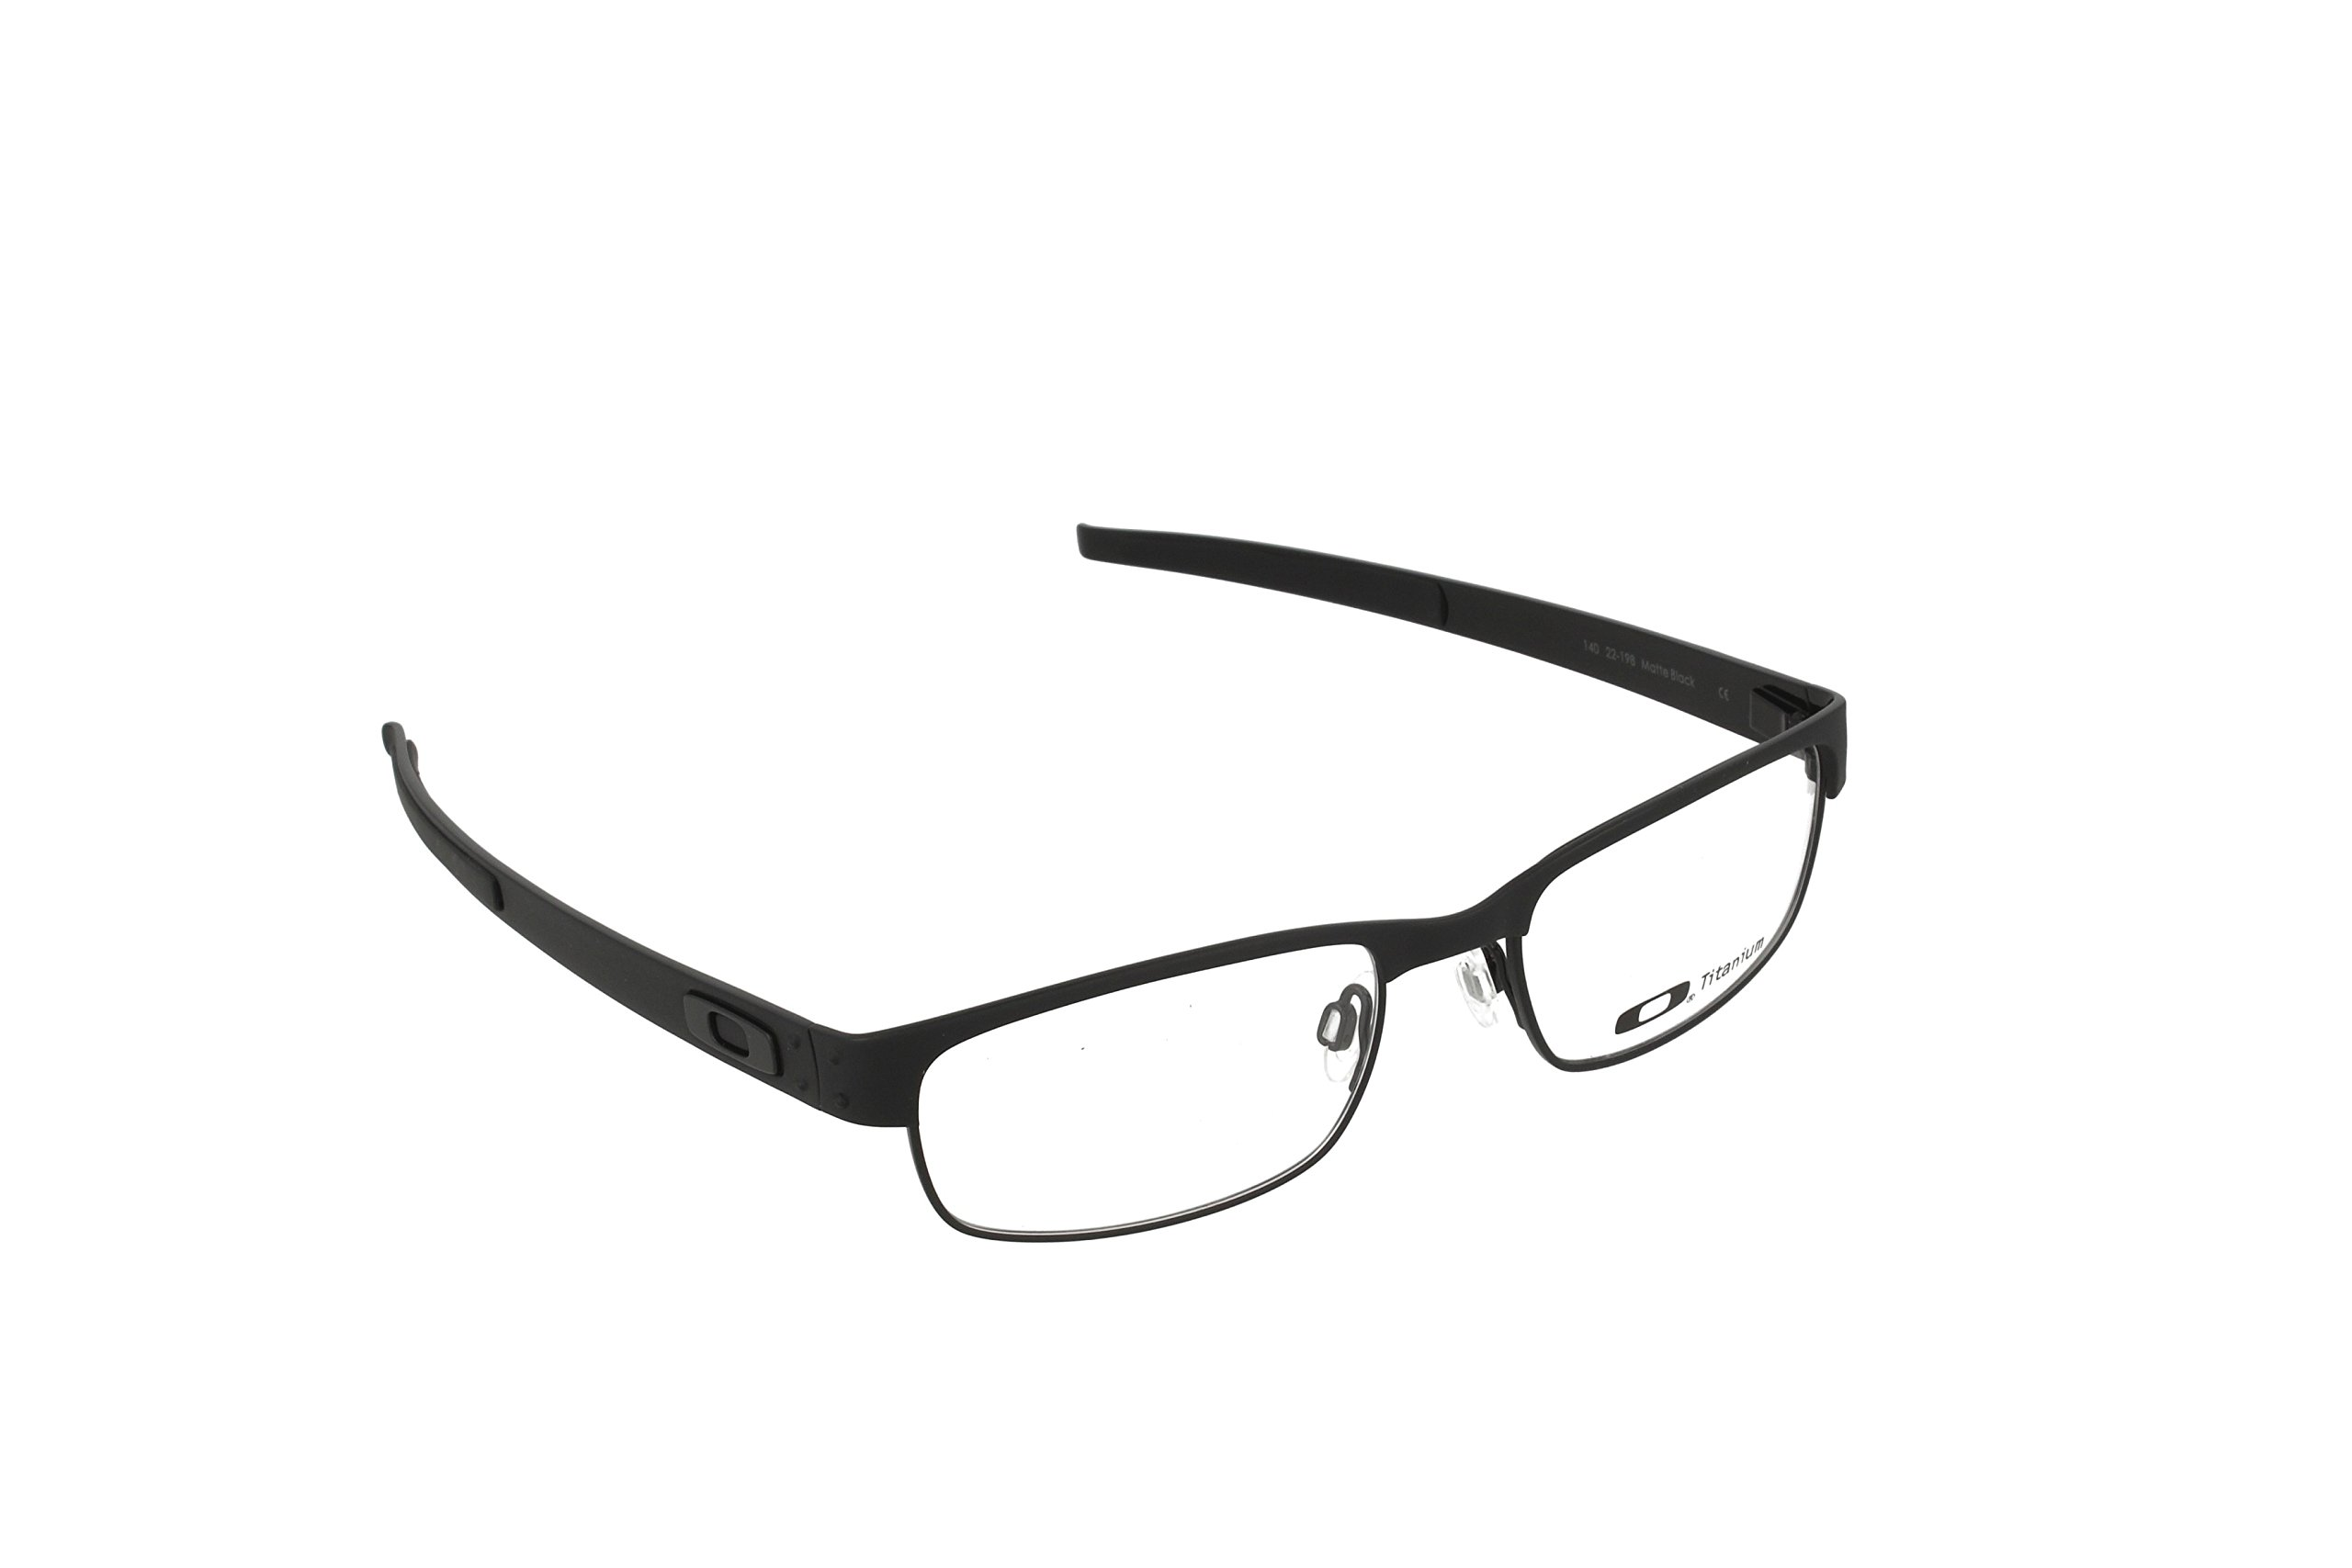 Oakley Metal Plate (53) Eyeglass Frames - Matte Black by Oakley